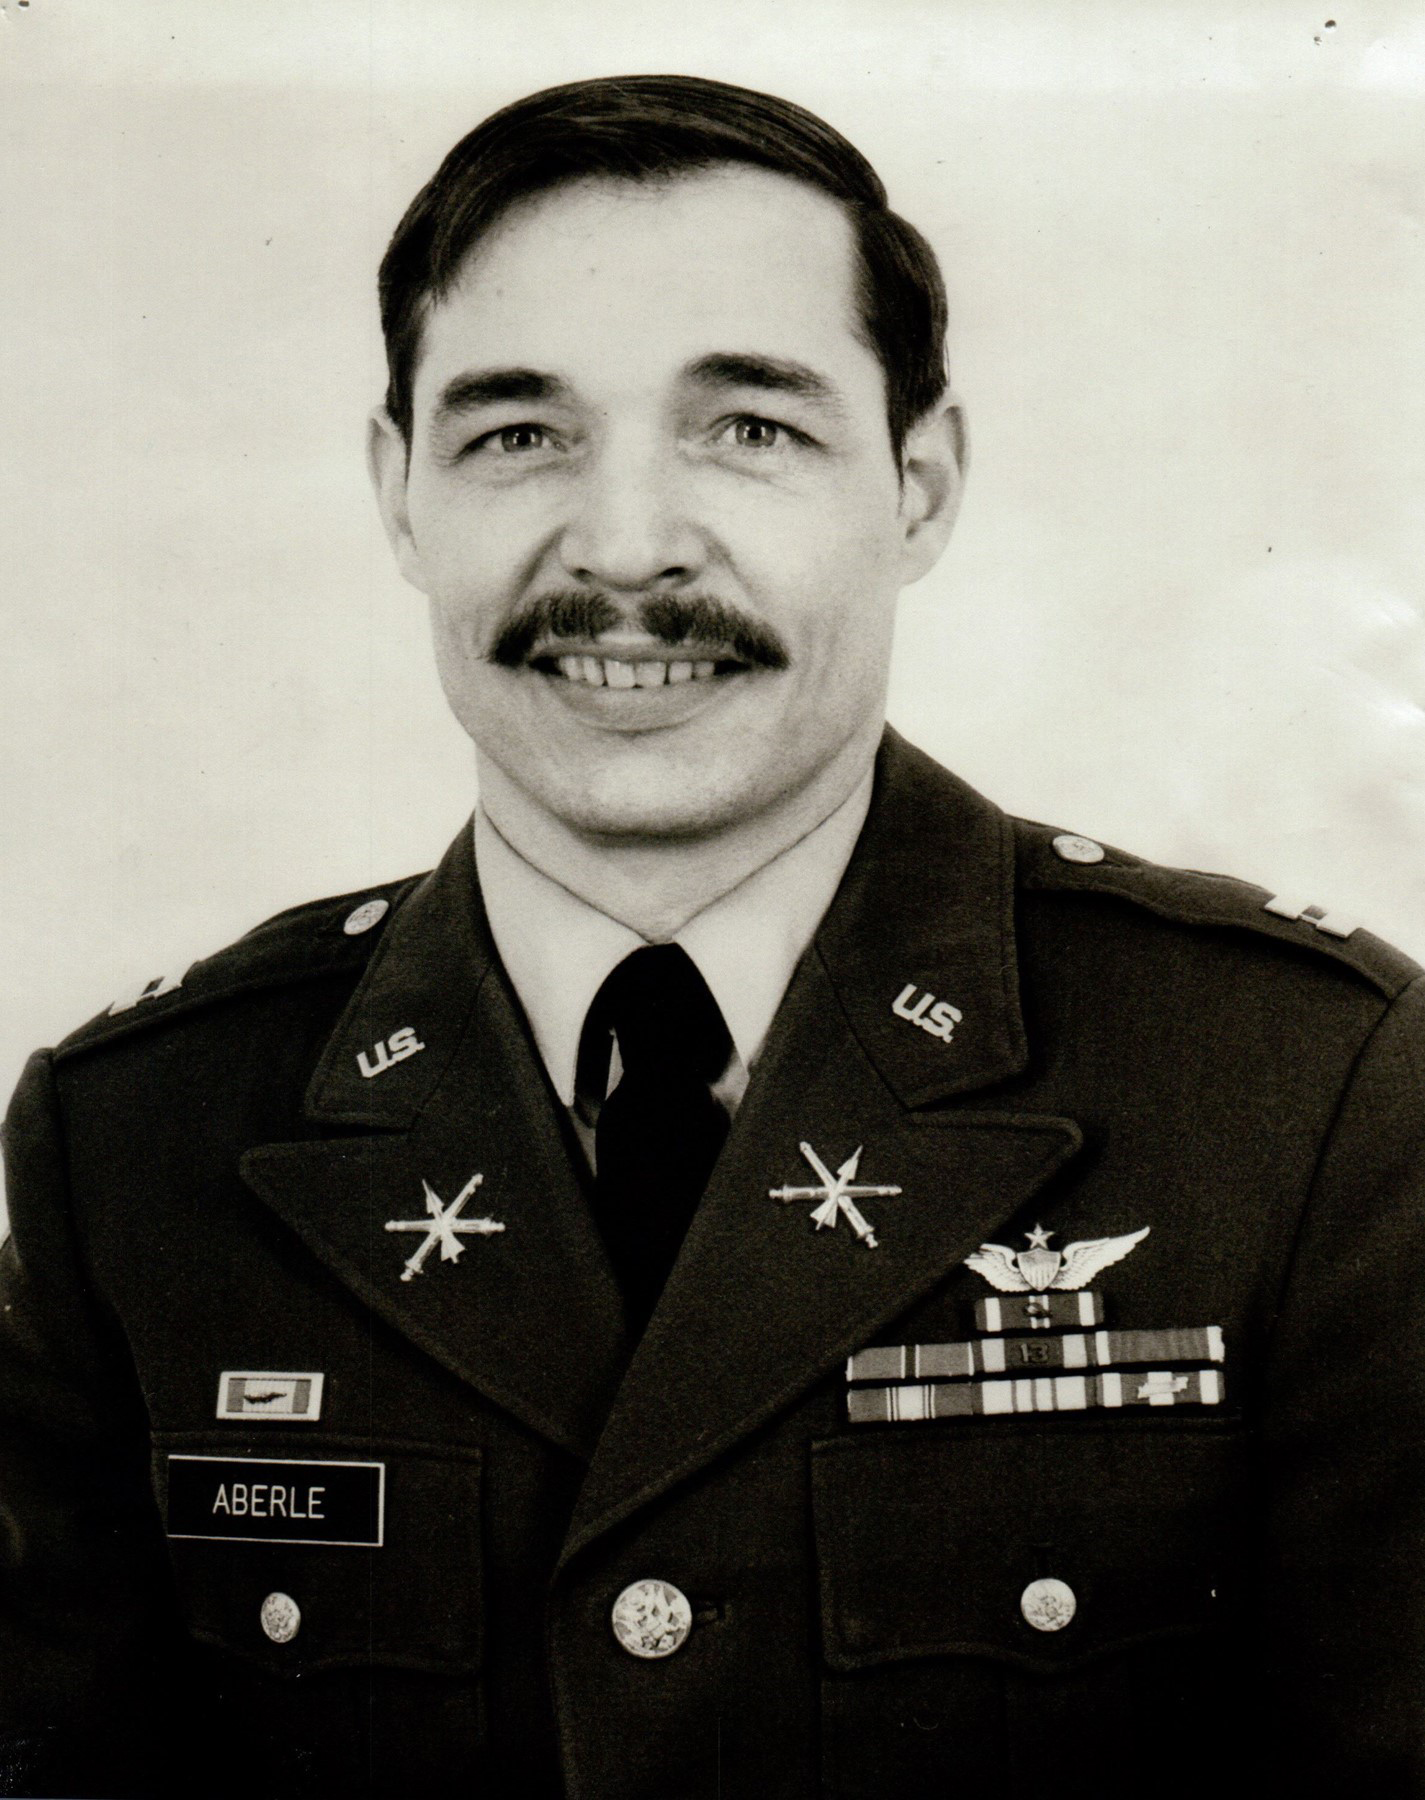 Vincent Aberle was career Army pilot